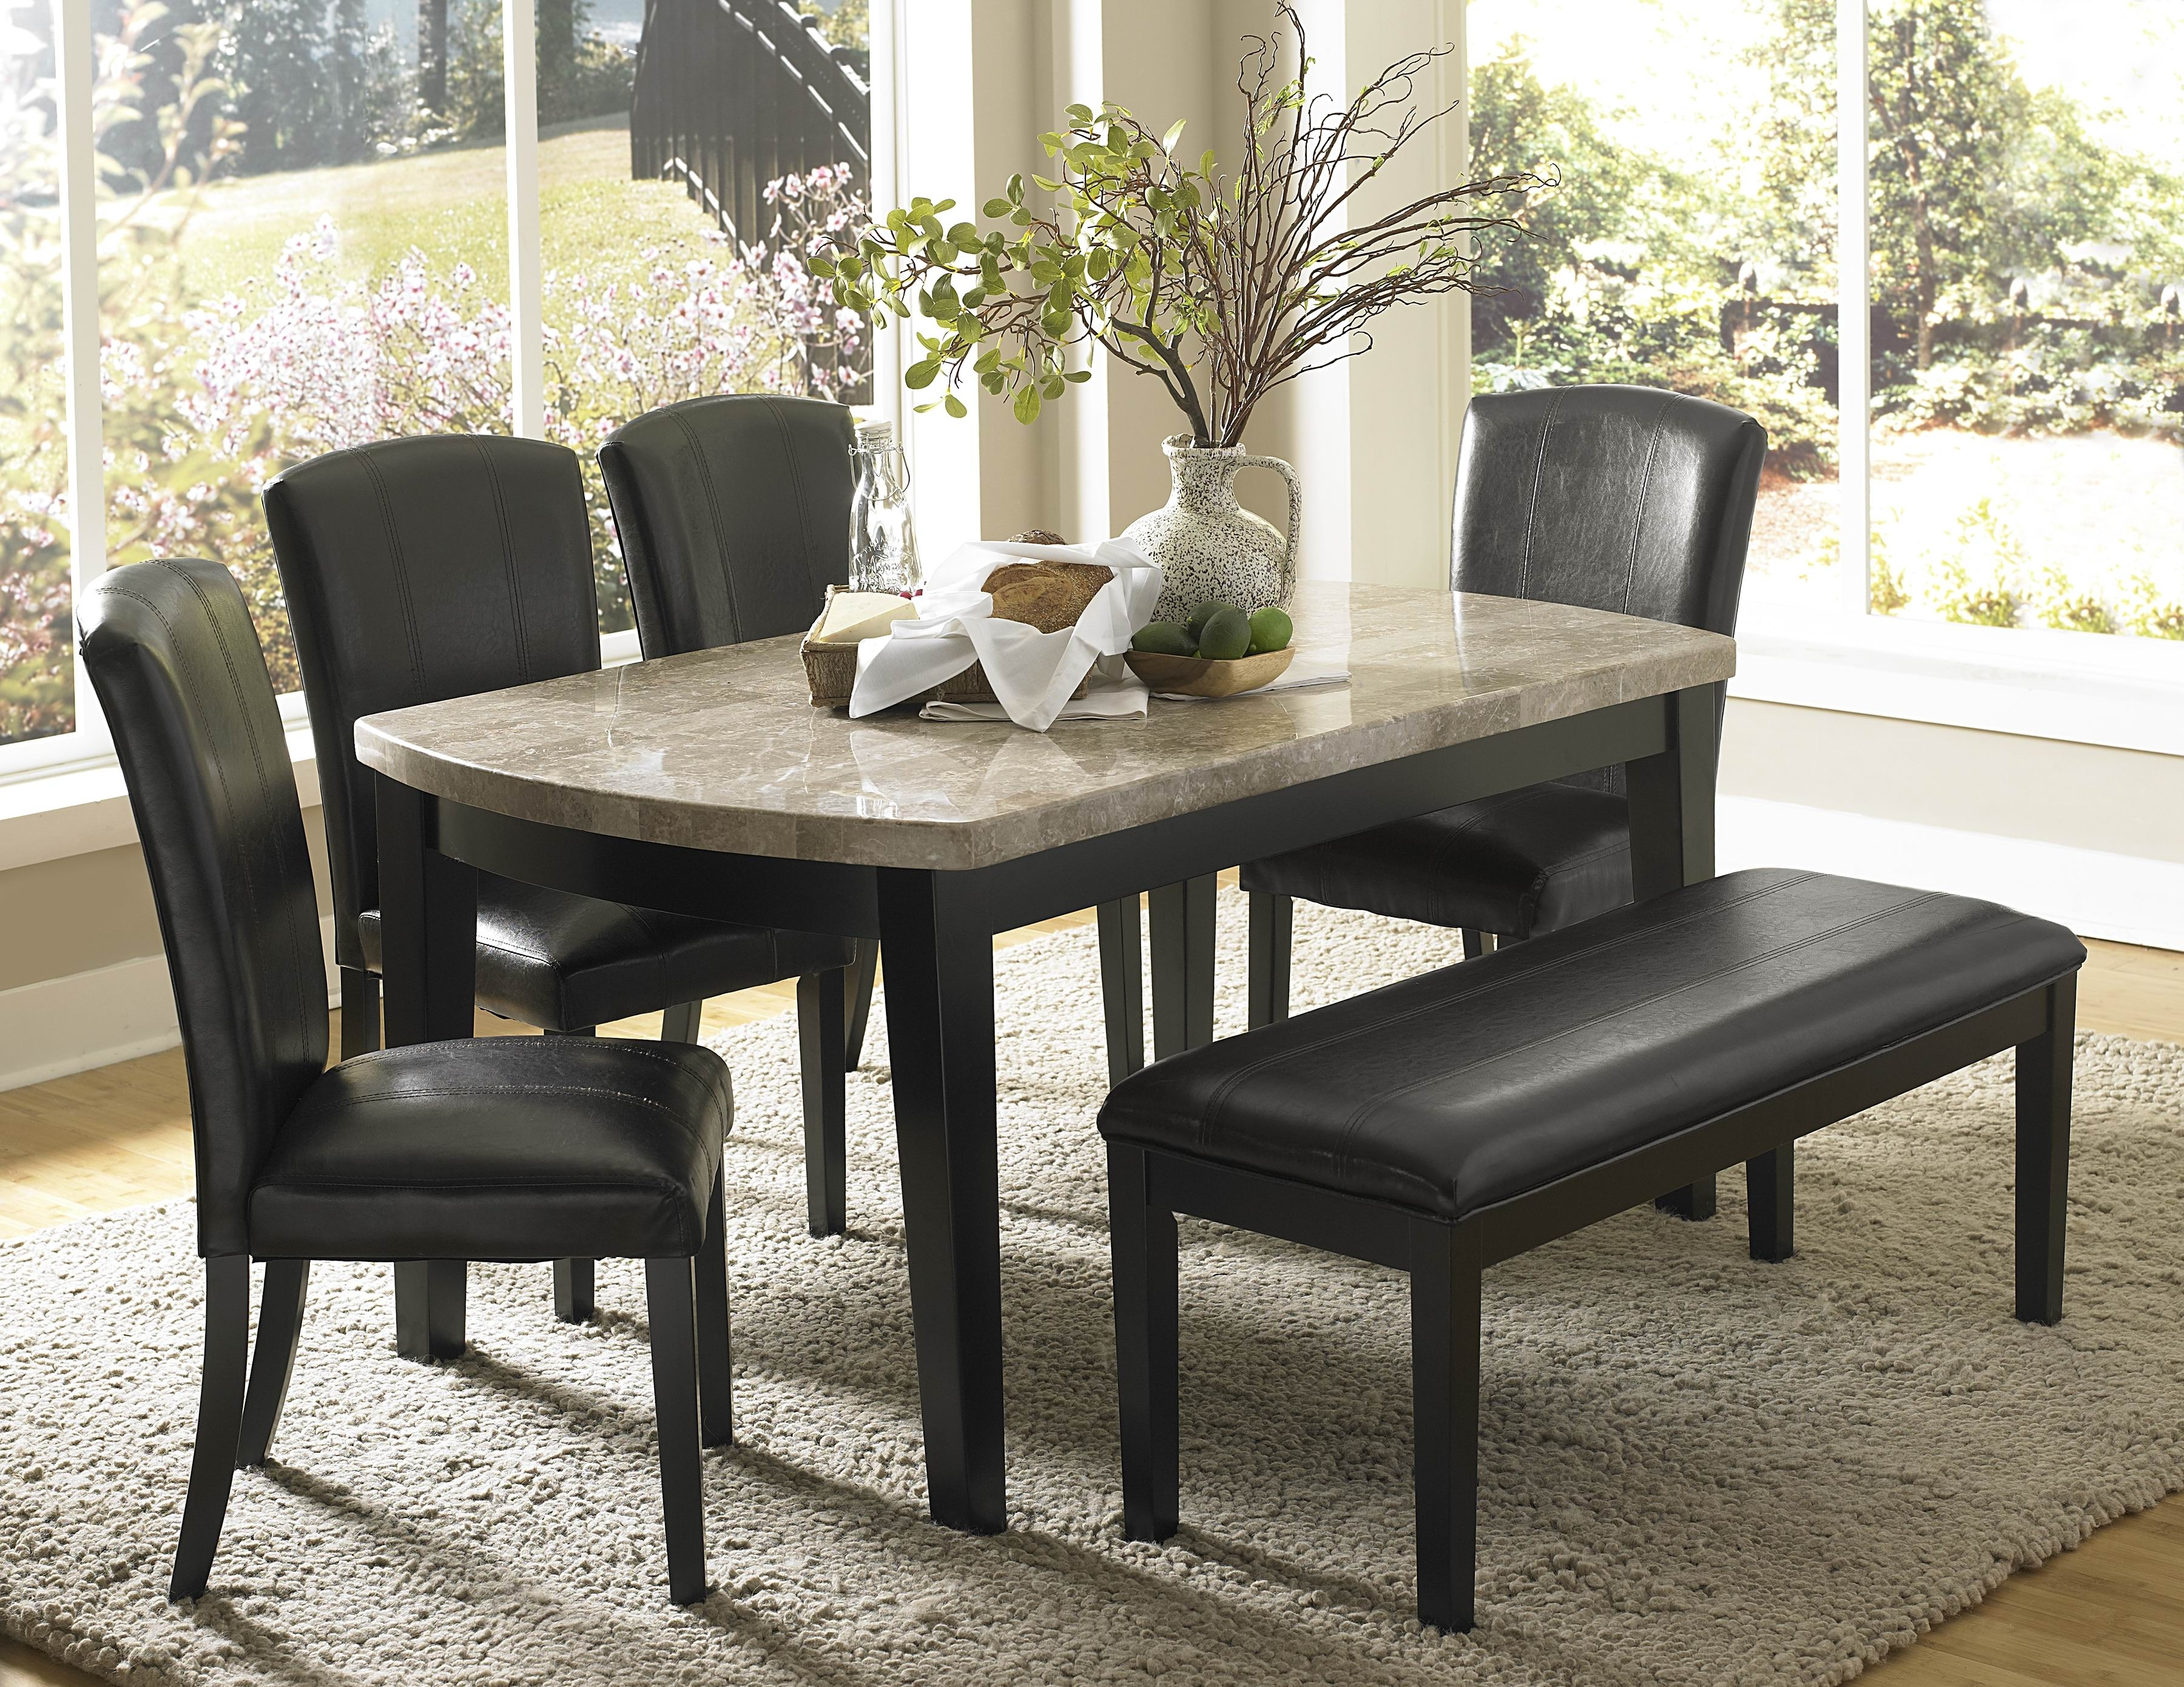 Most Current Marble Dining Room Table Set – Castrophotos Intended For Solid Marble Dining Tables (View 11 of 25)